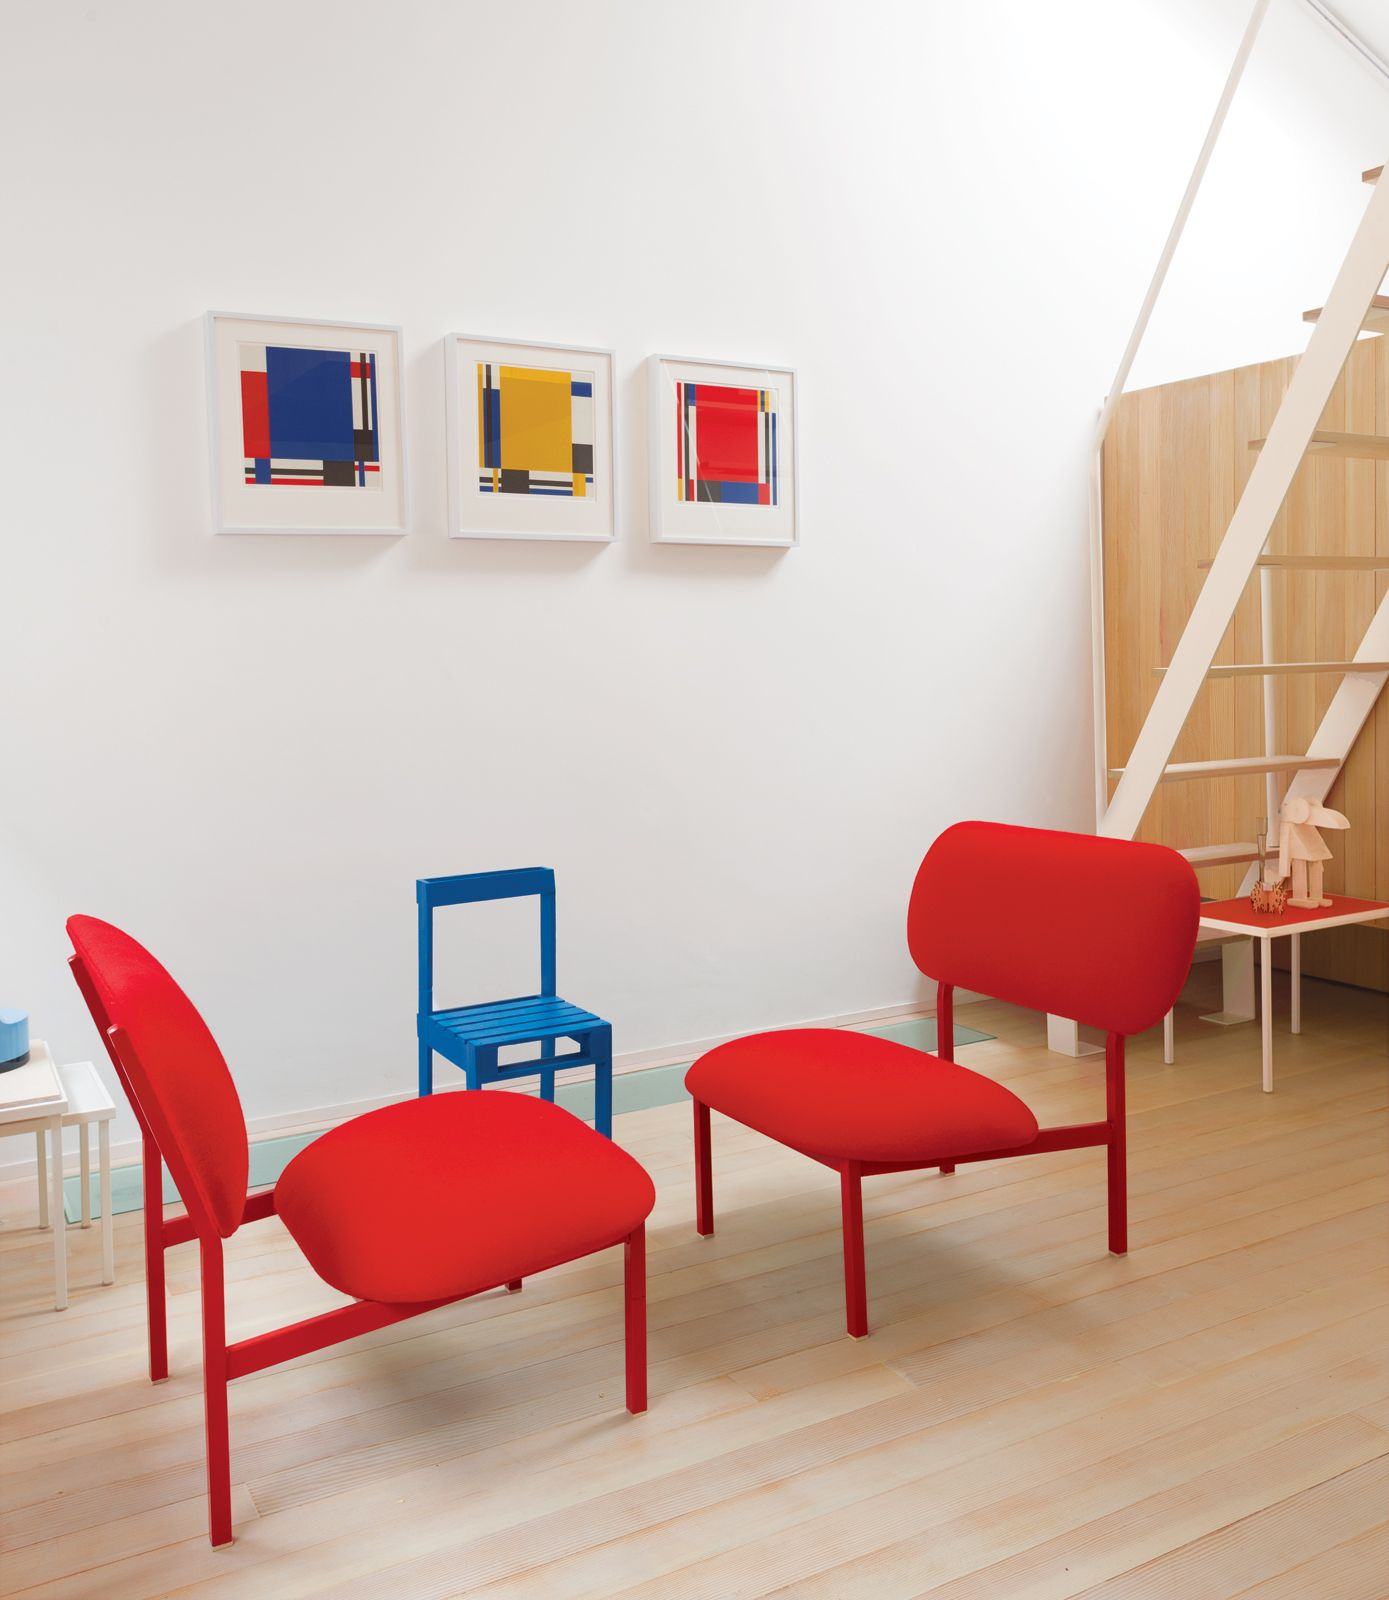 Small guest house designed by studio mania modern chairs red chairs bethnal green